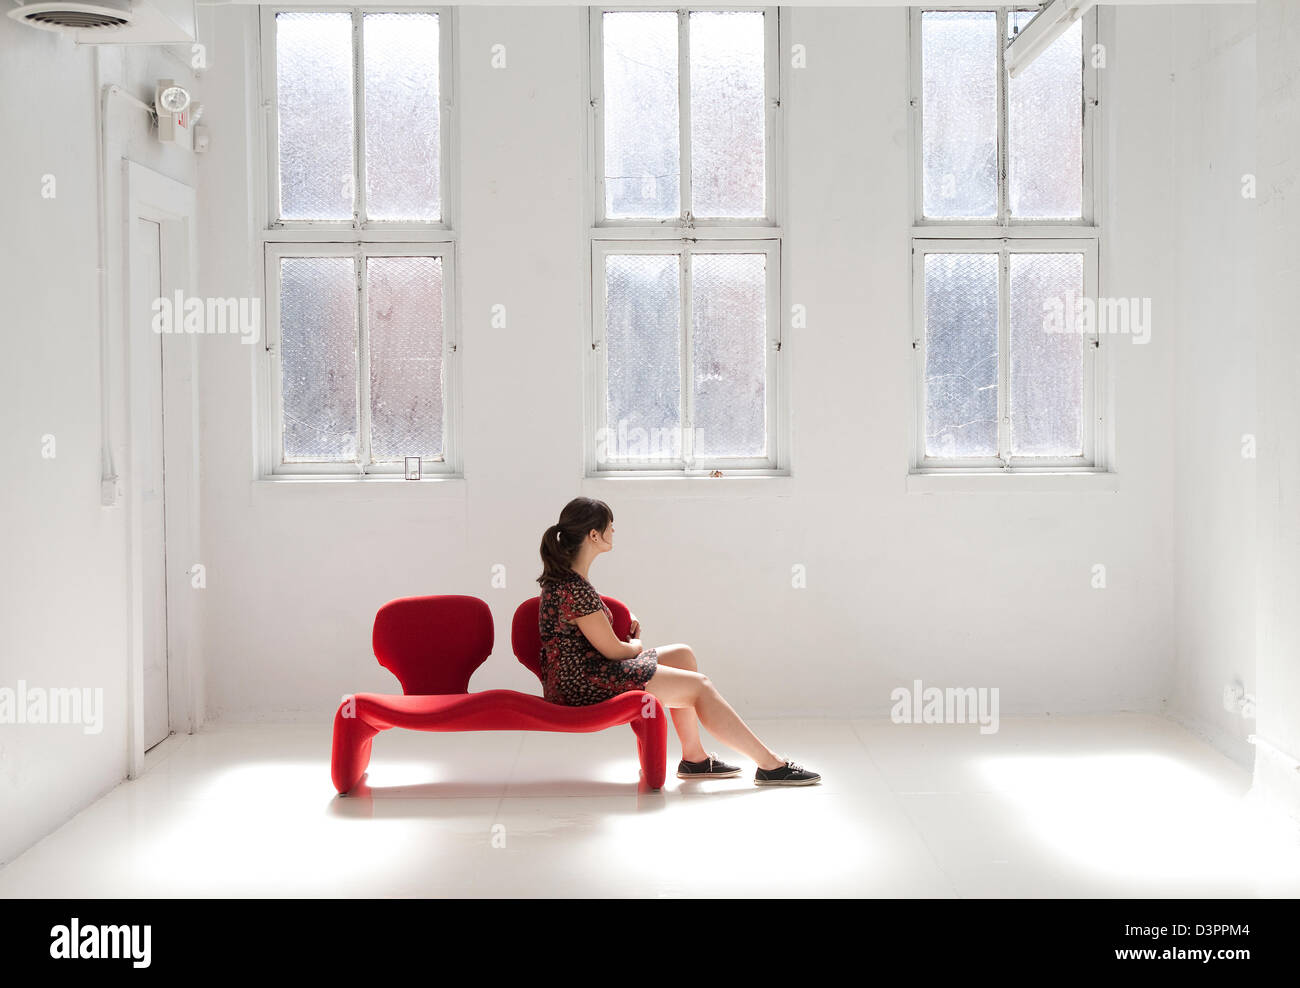 GIrl sitting in a blank room with a red sofa - Stock Image